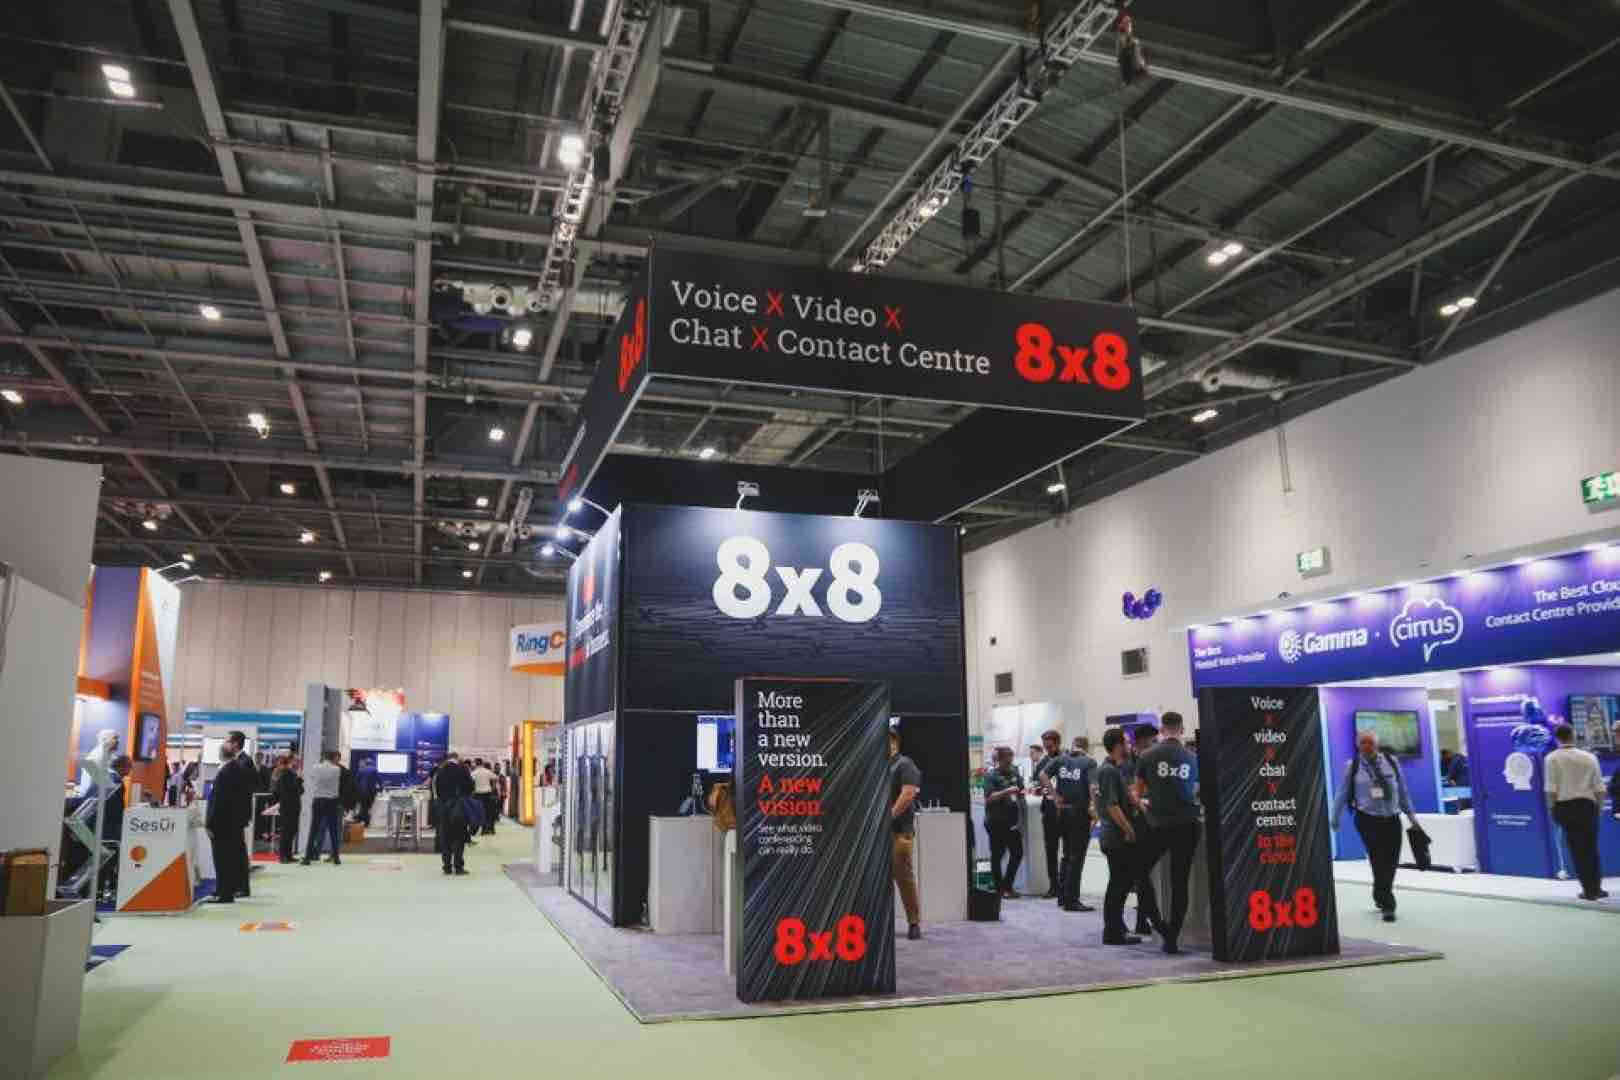 075 Exhibition Stands London.jpg